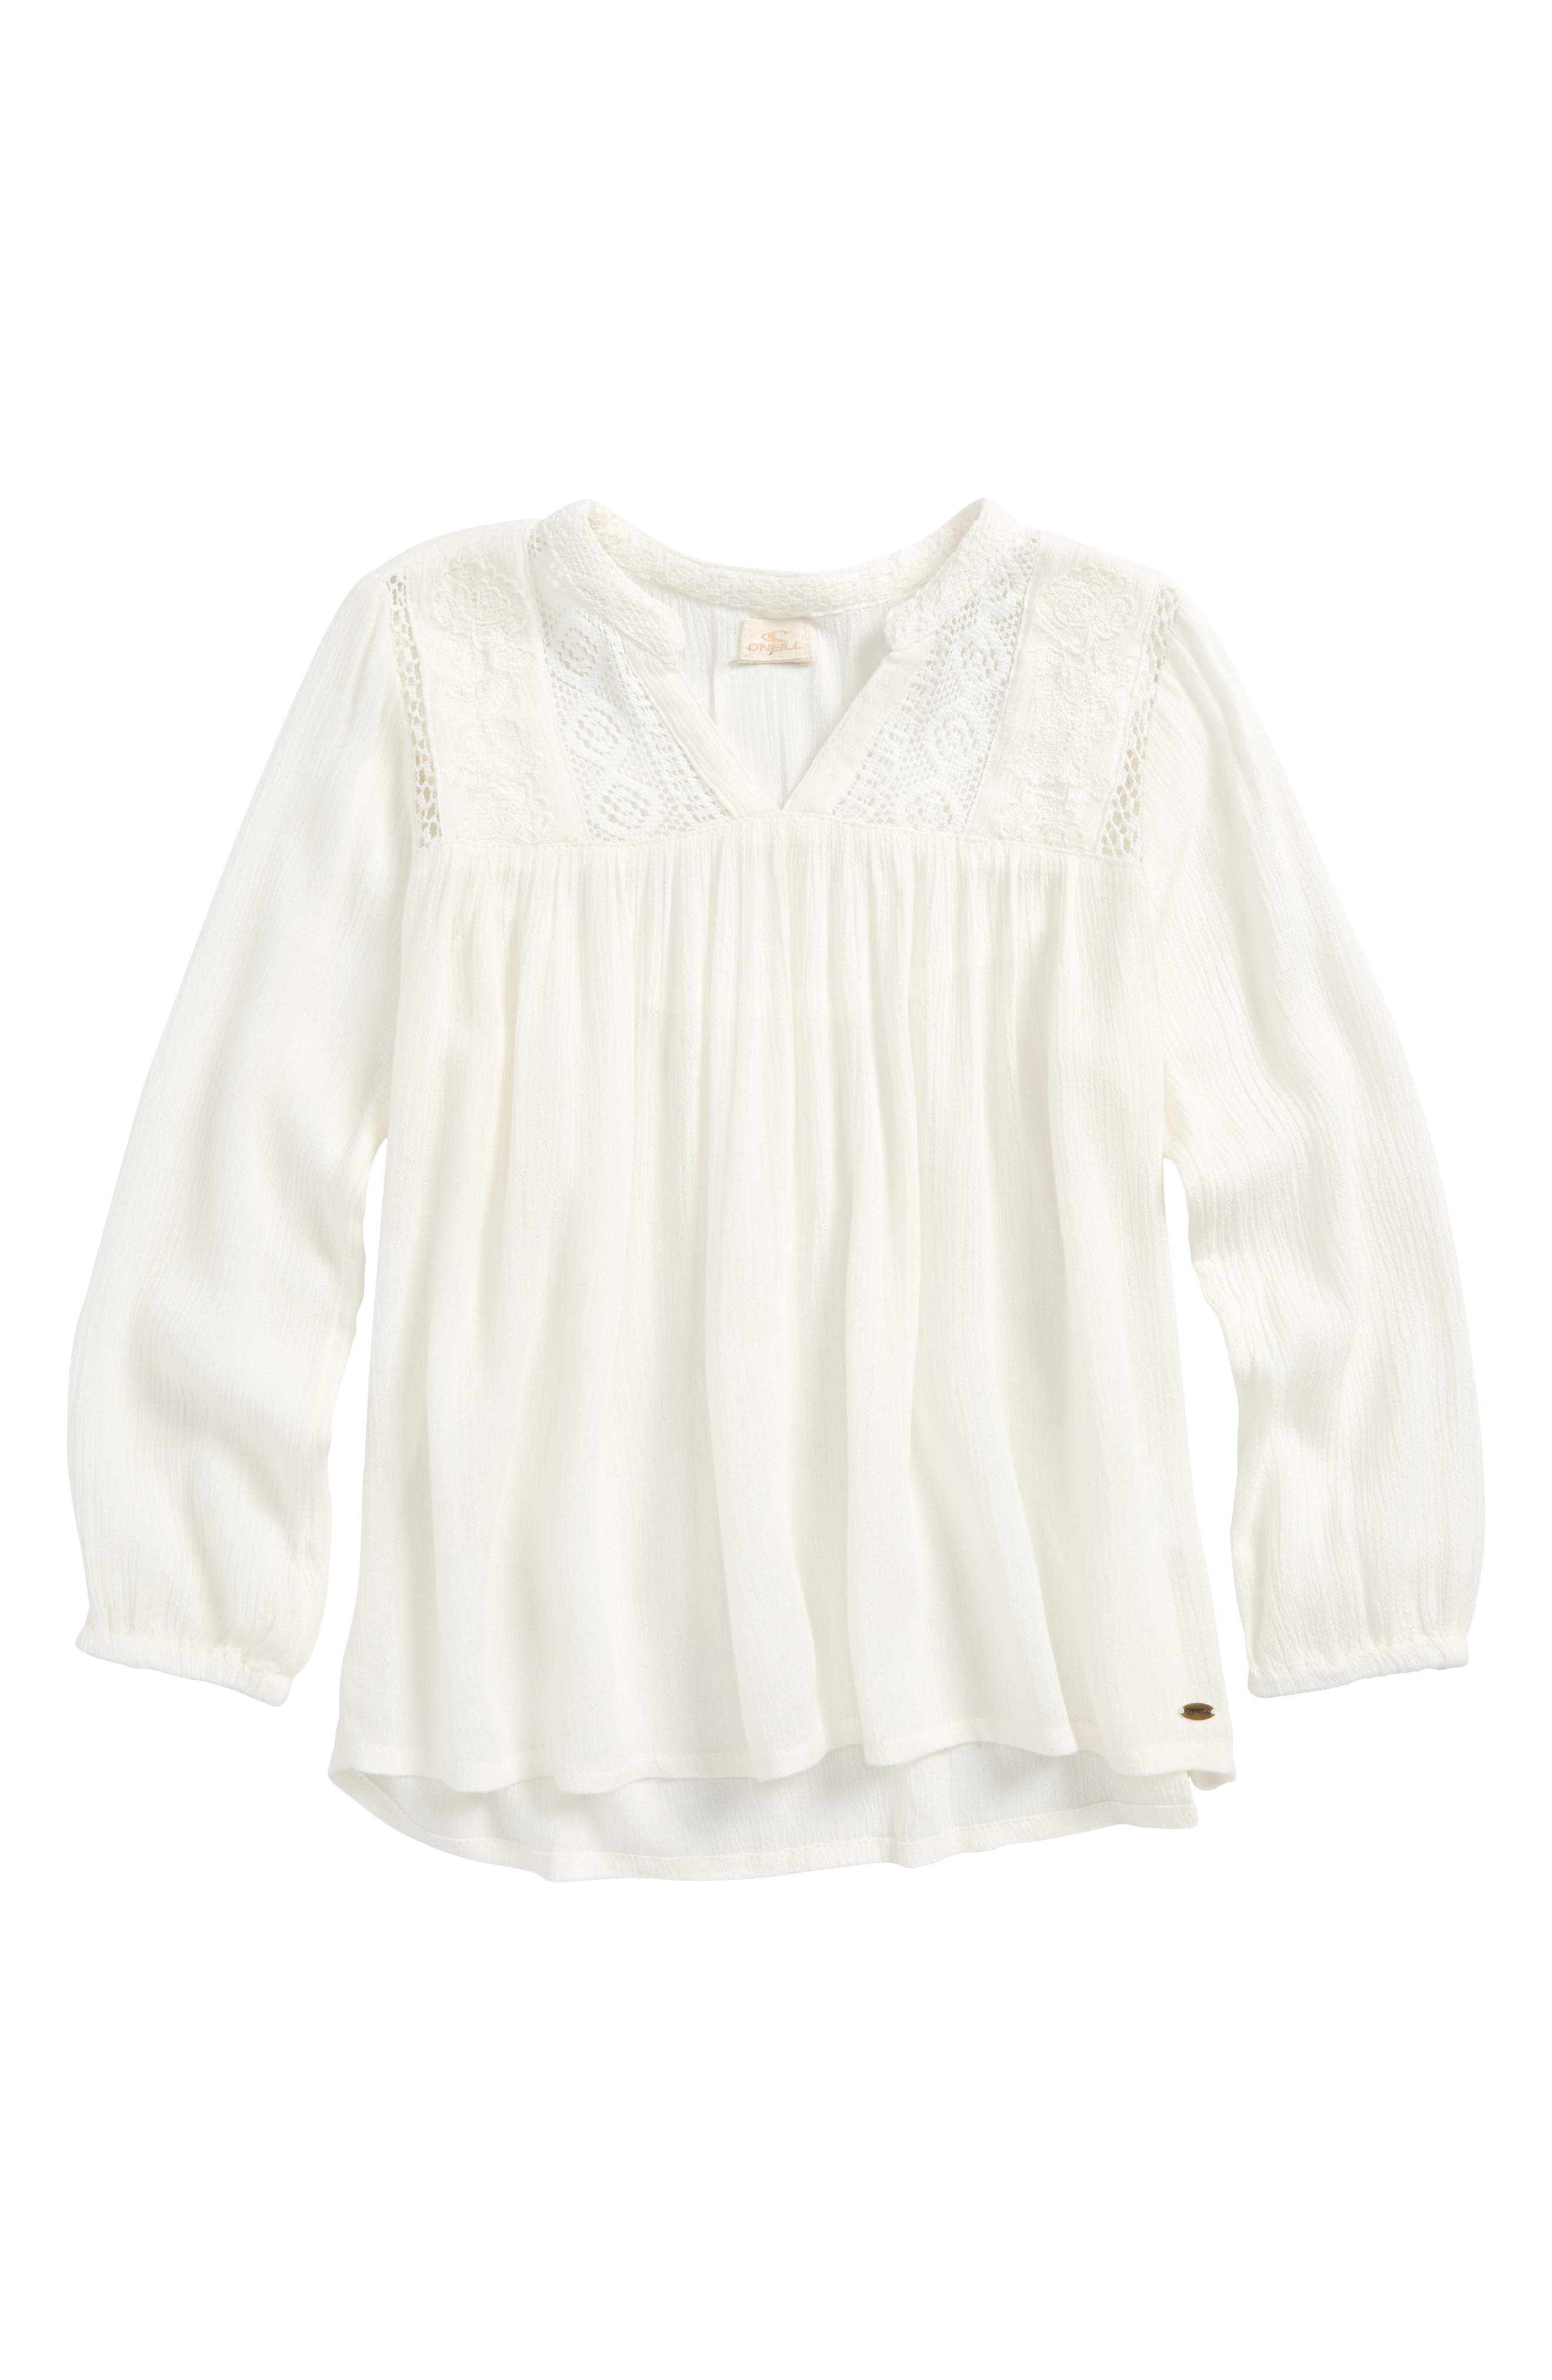 O'Neill Marion Embroidered Peasant Top (Big Girls)